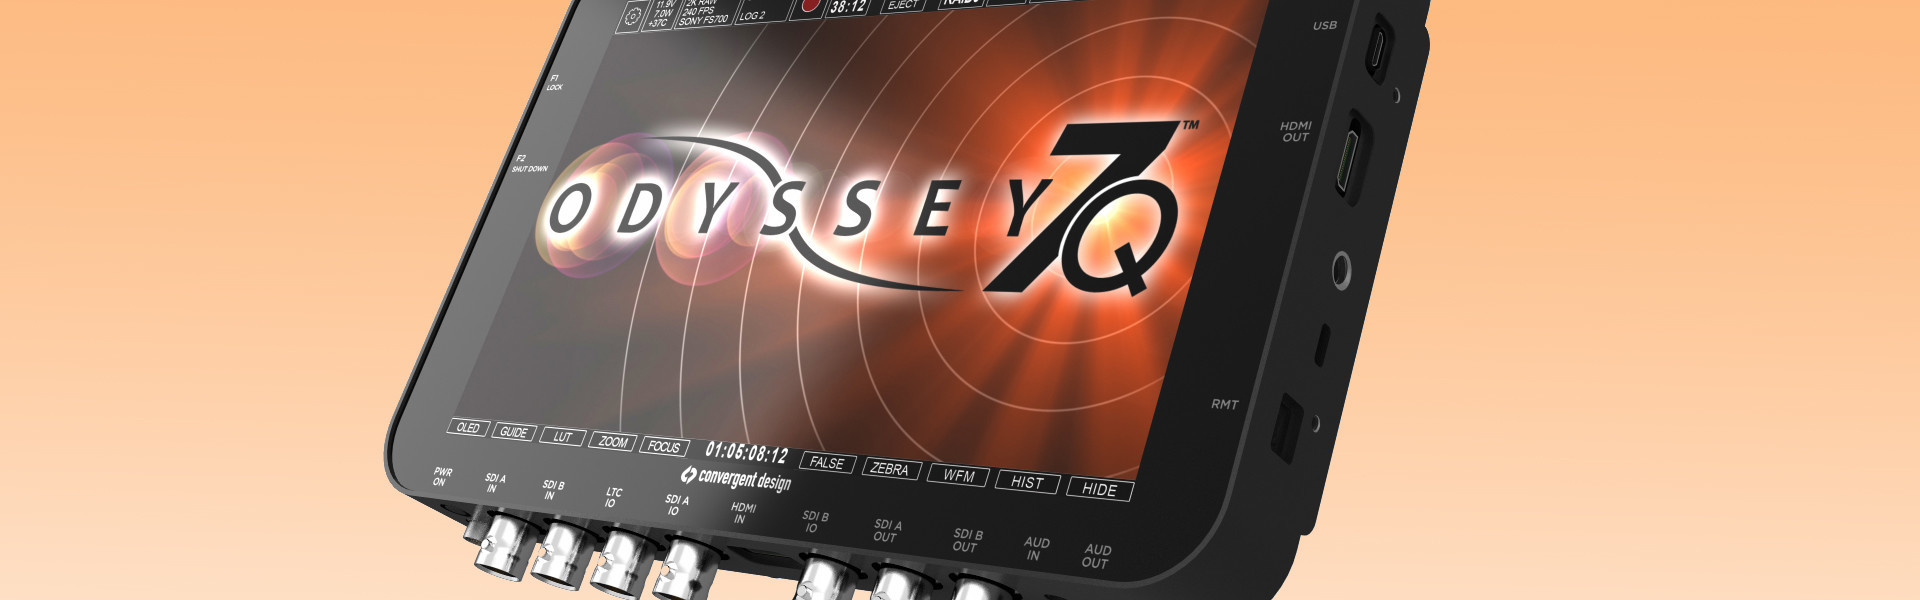 Header image for article At the Bench: New Firmware & Features for the Odyssey7Q